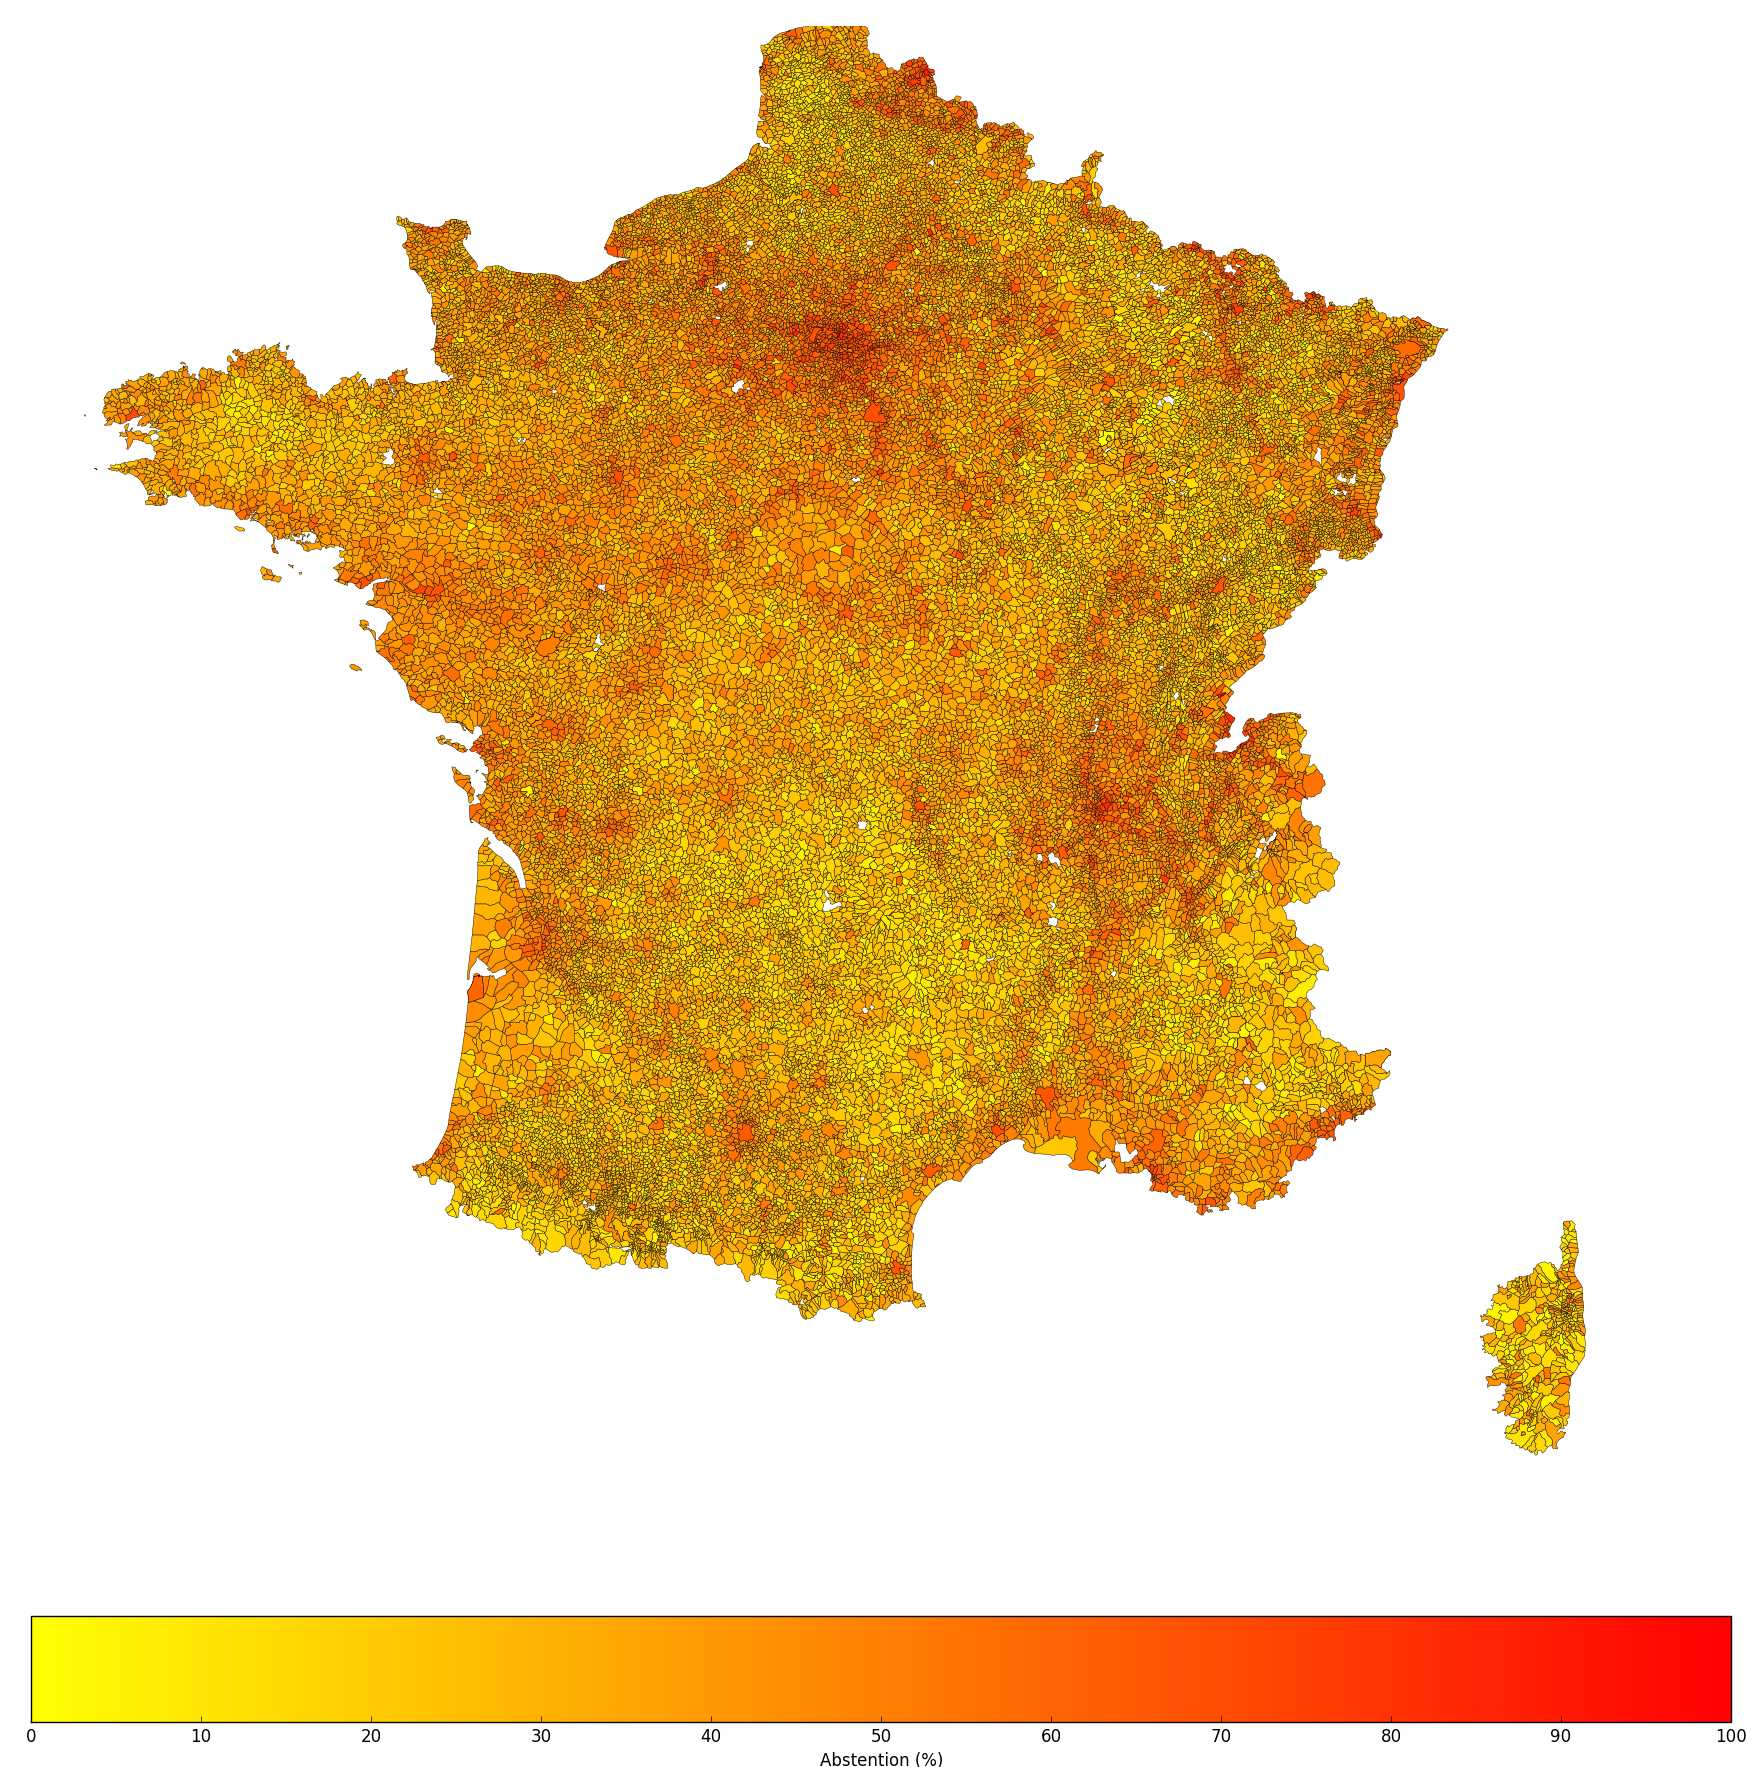 Heat map of the abstention rate for the 2008 mayoral elections in France, courtesy of  Snips / Alexandre Vallette